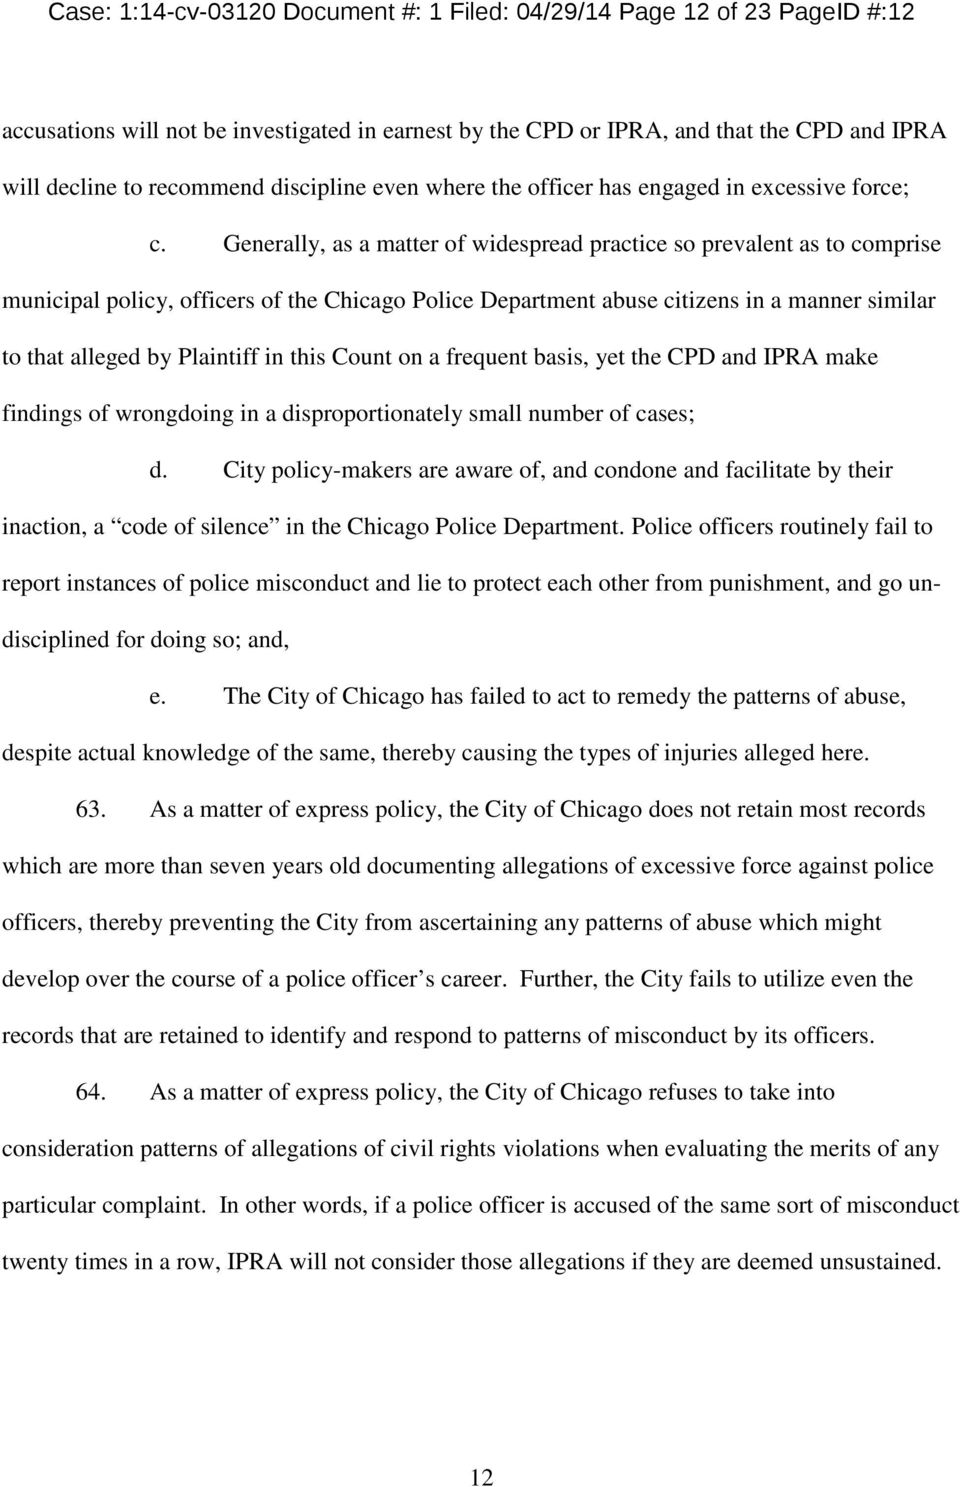 Generally, as a matter of widespread practice so prevalent as to comprise municipal policy, officers of the Chicago Police Department abuse citizens in a manner similar to that alleged by Plaintiff